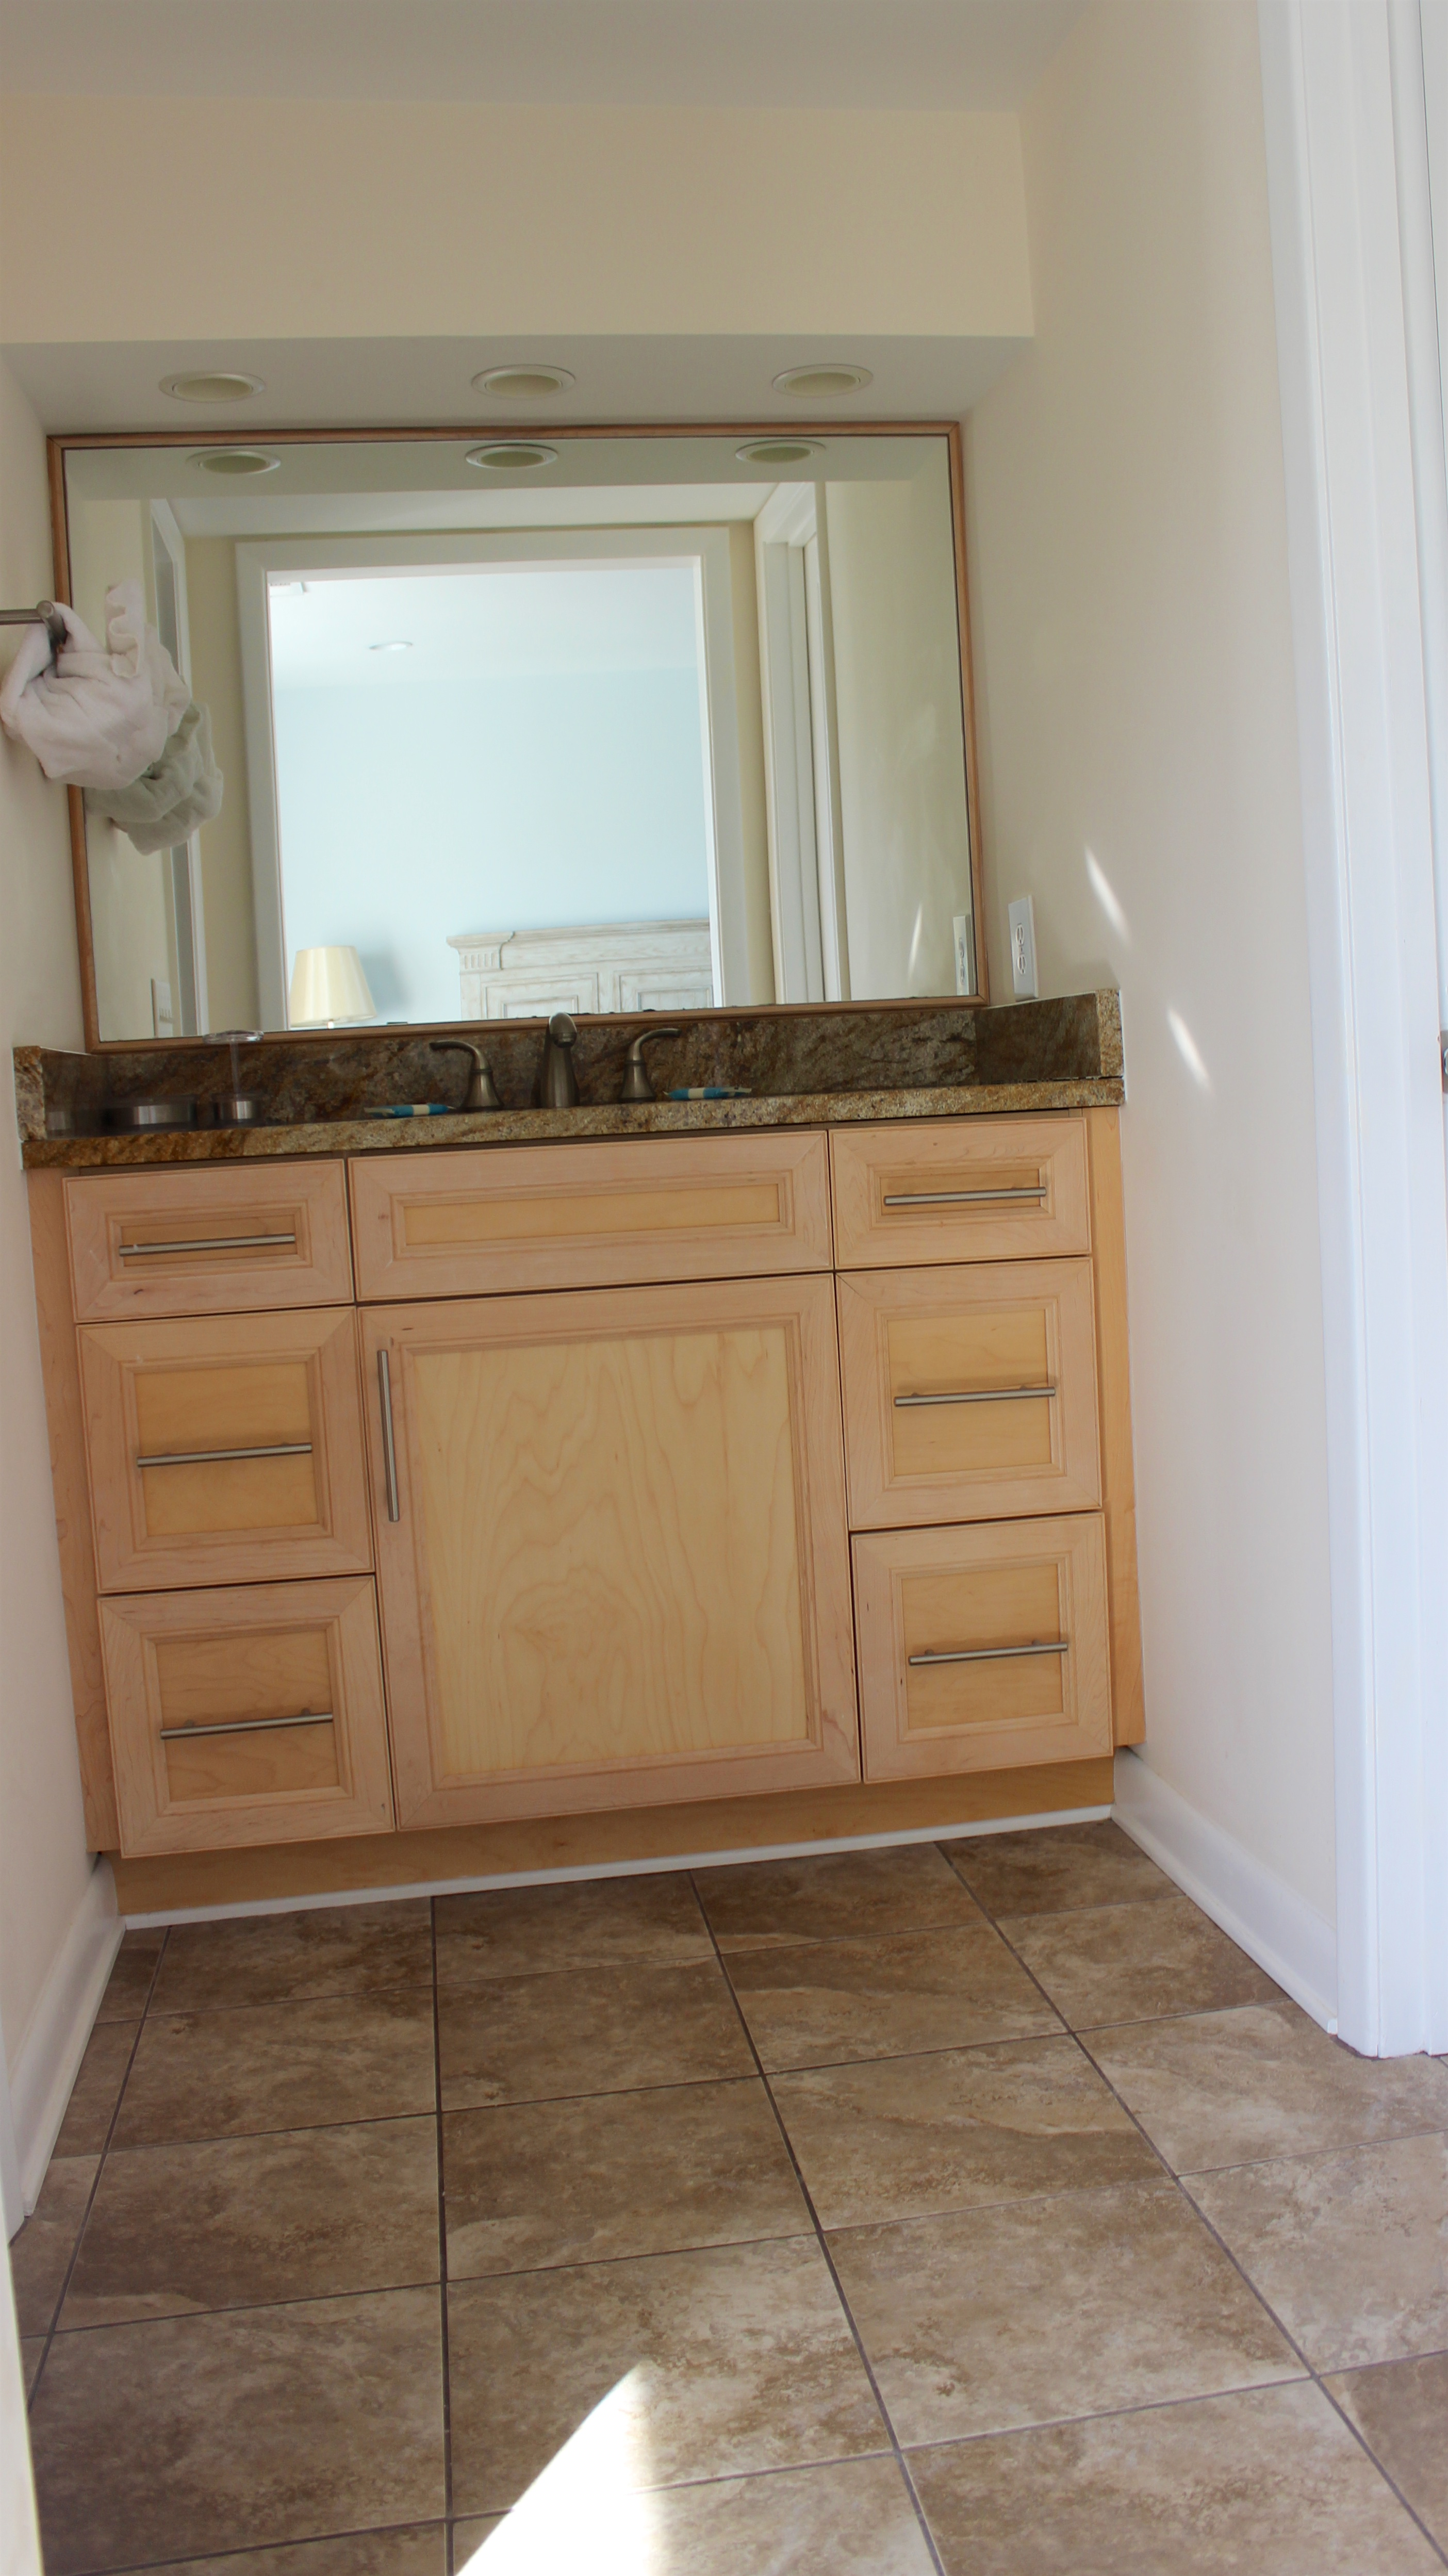 There is a separate sink area with a granite topped vanity in the master bedroom.